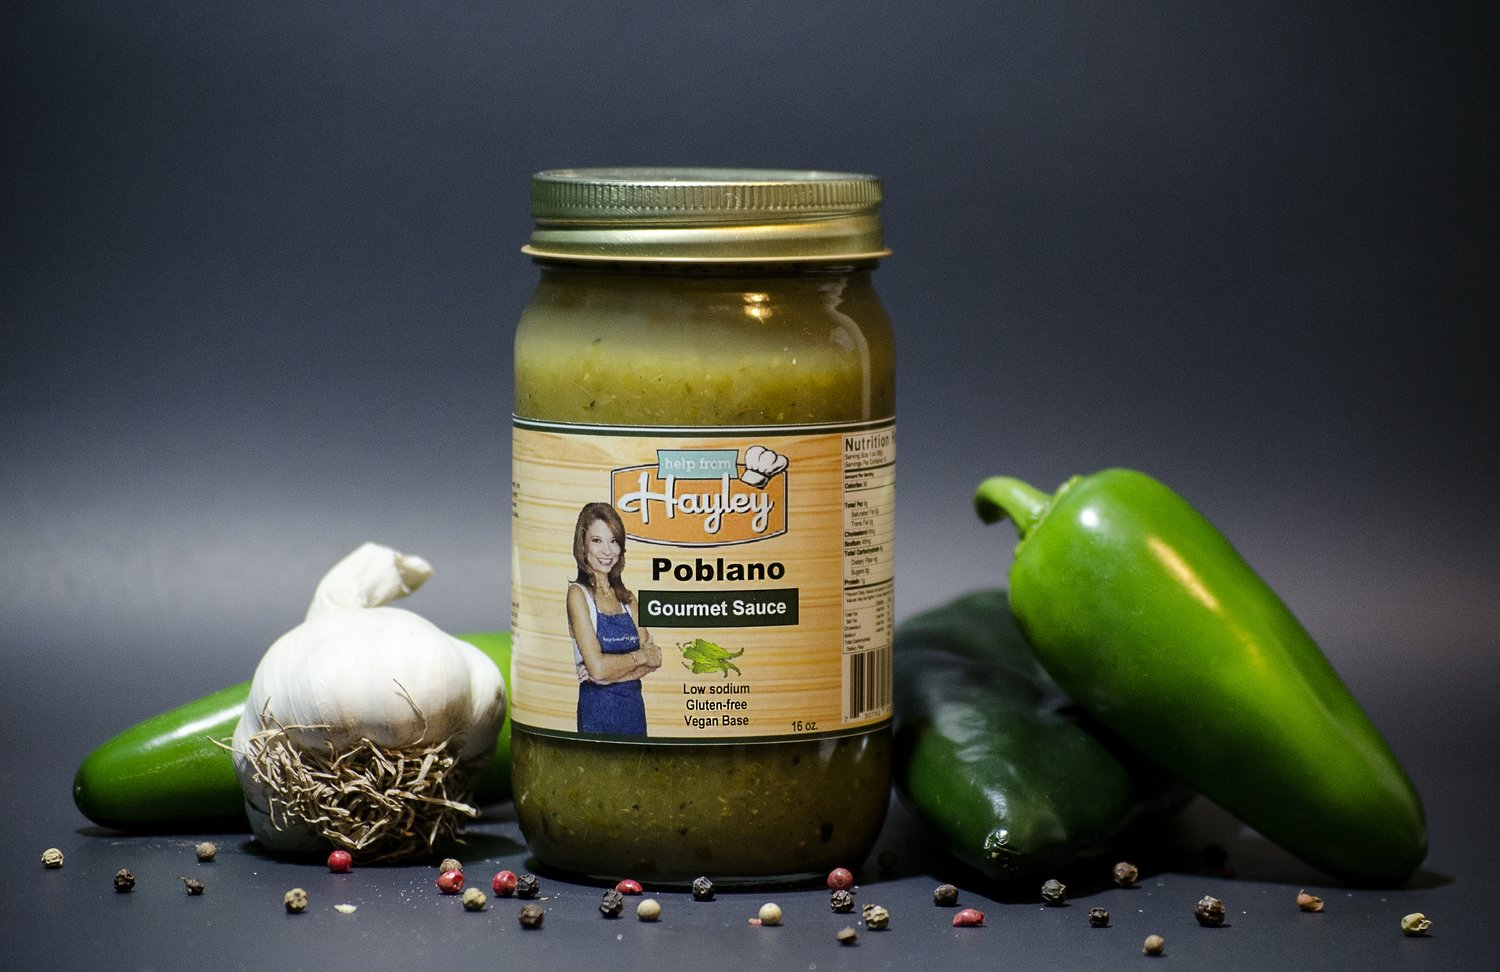 Poblano Cooking Sauce